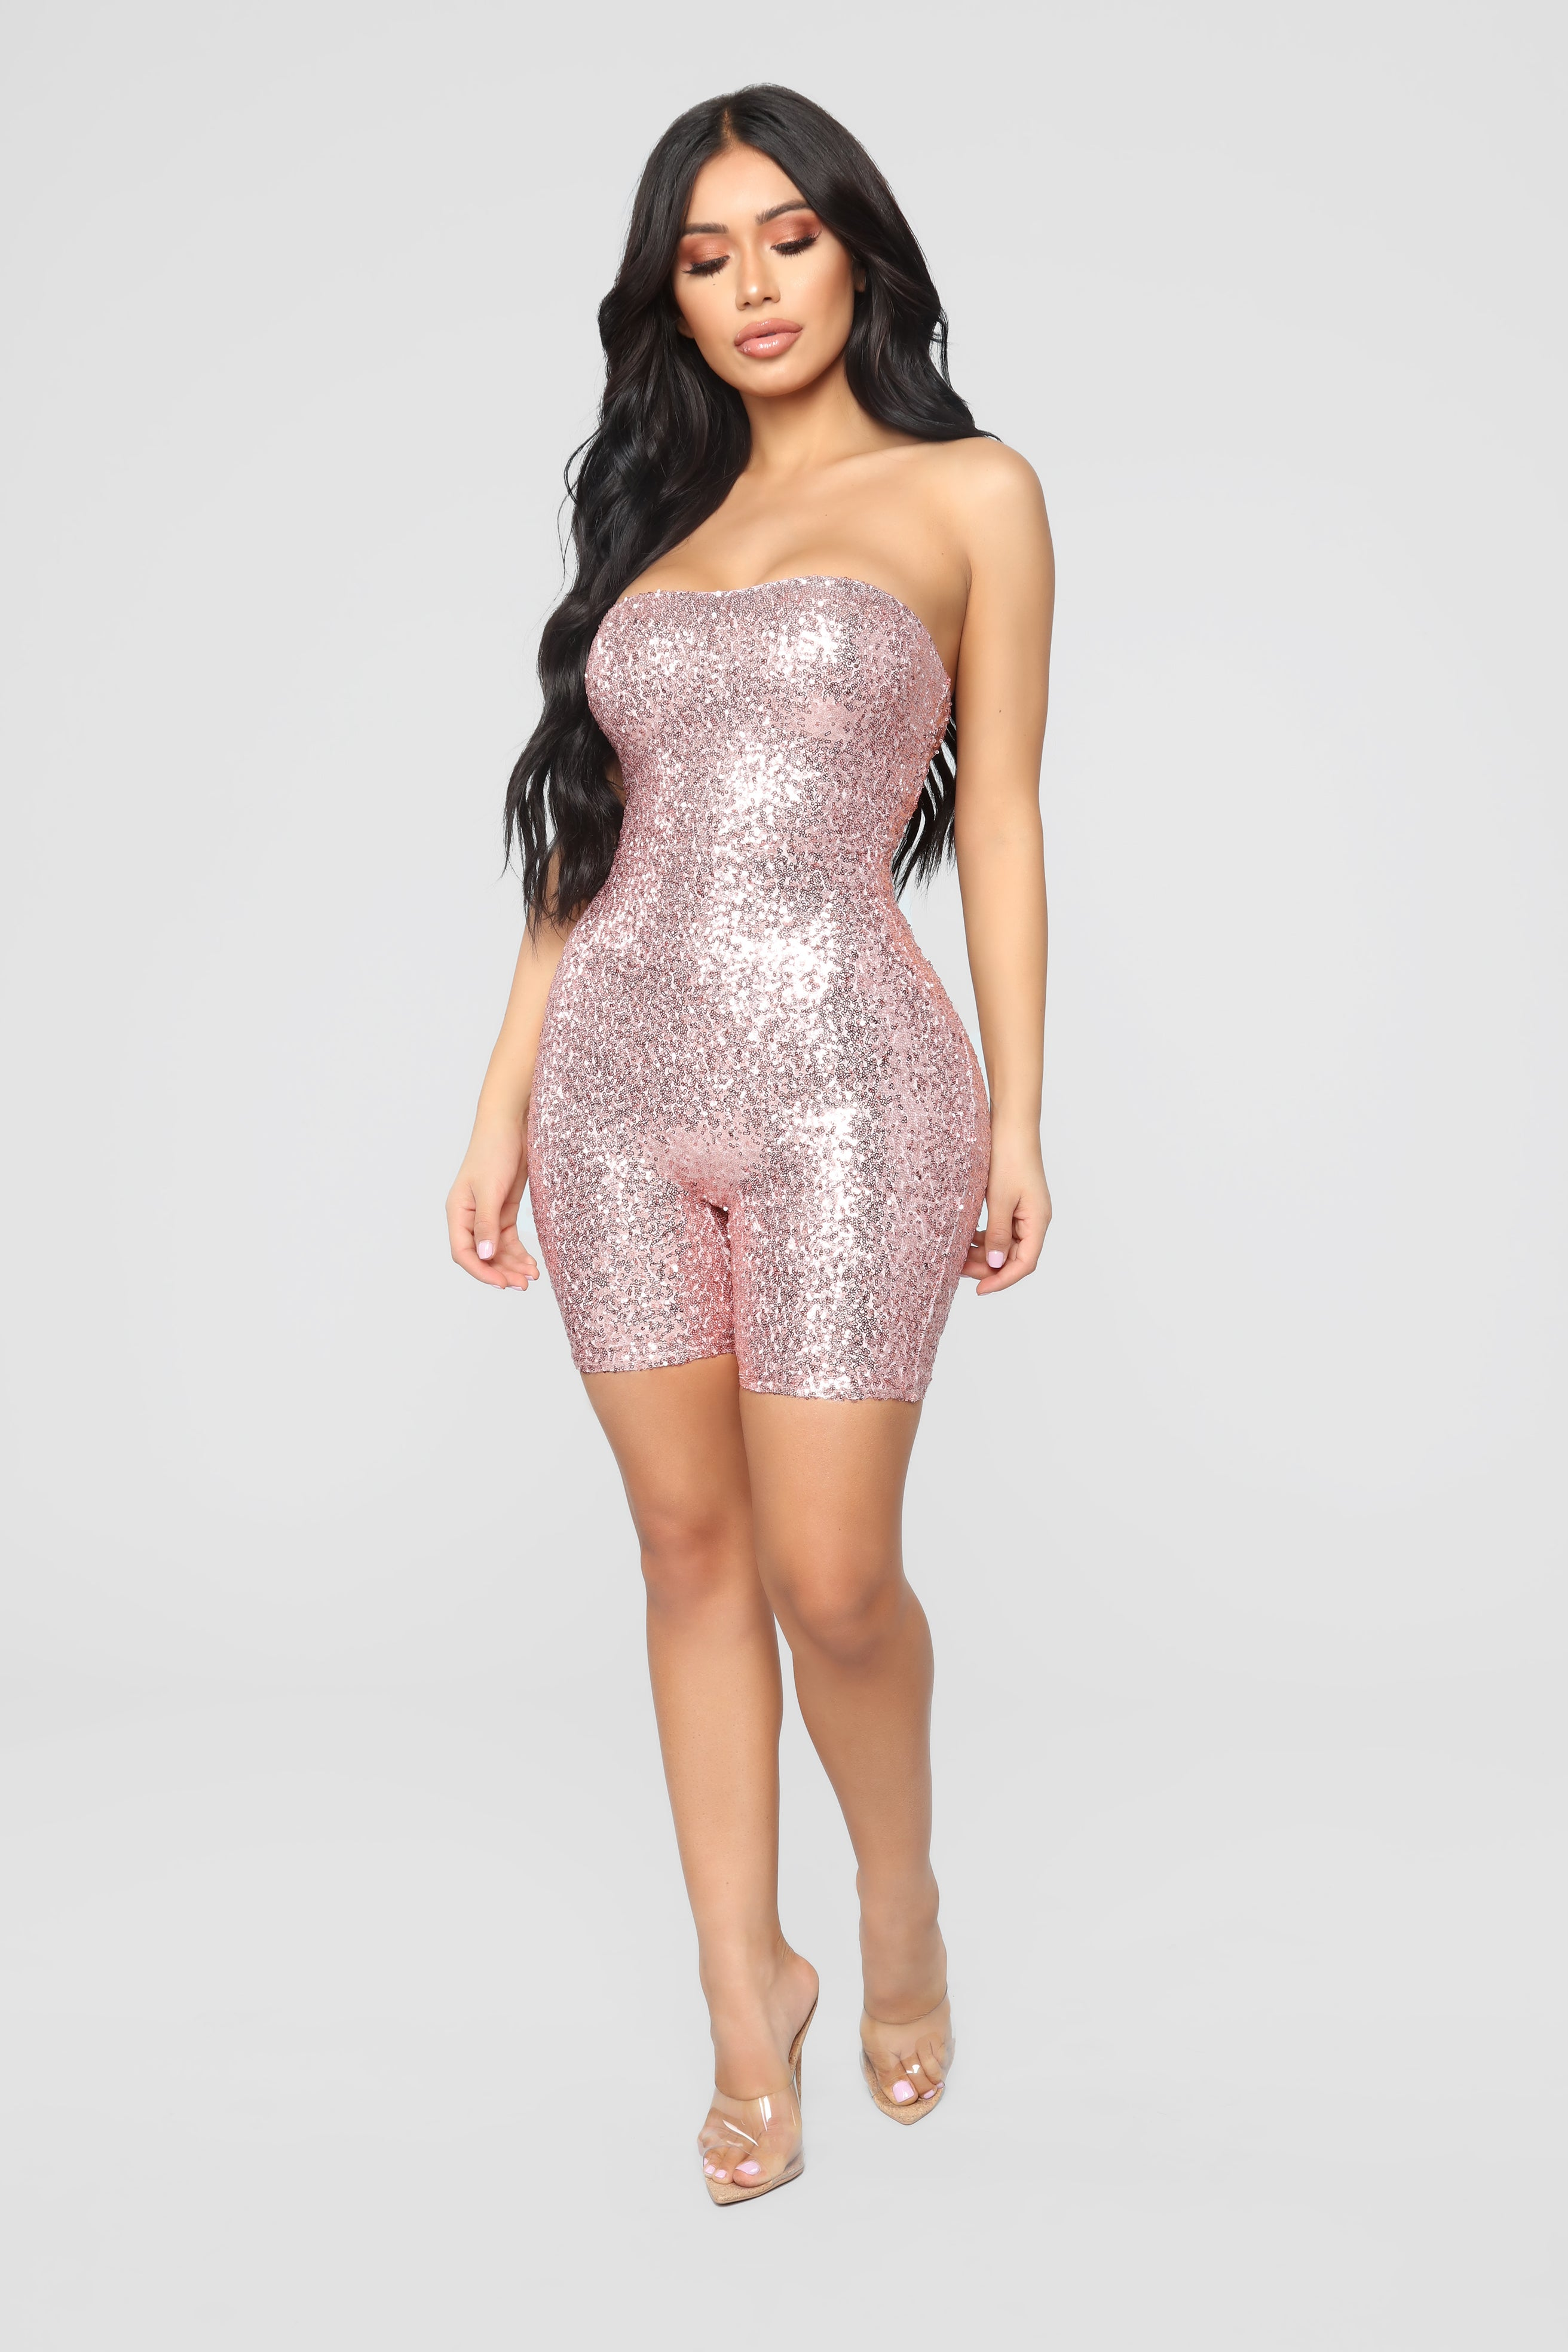 35ee3c885cf Birthday Bash Sequin Romper - Pink